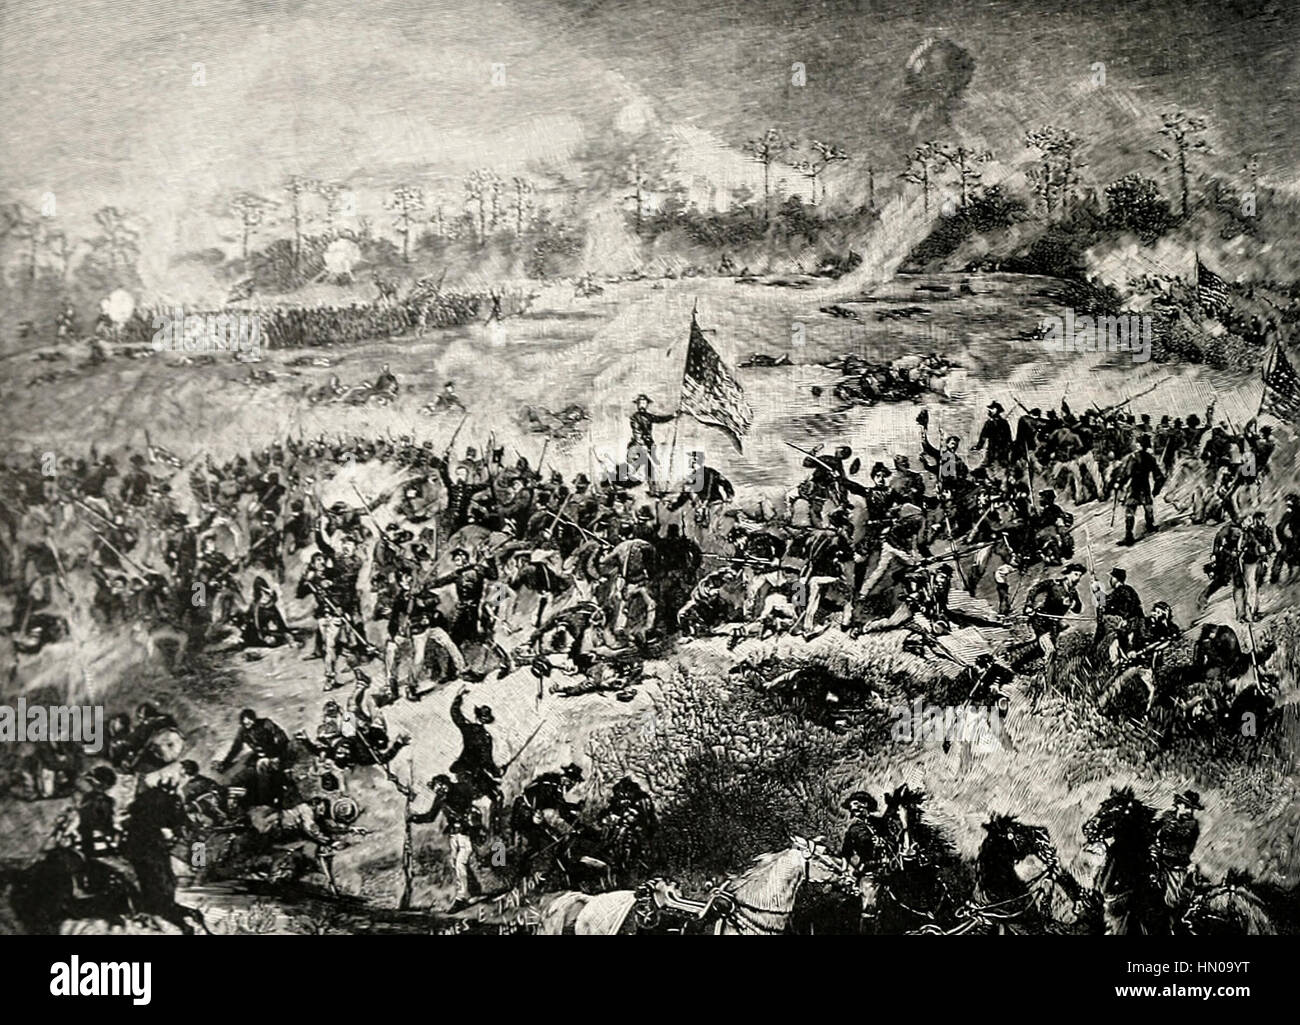 The Battle of Atlanta, July 22, 1864 - Fuller's Division of the Sixteenth Corps, rallying to hold their ground - Stock Image